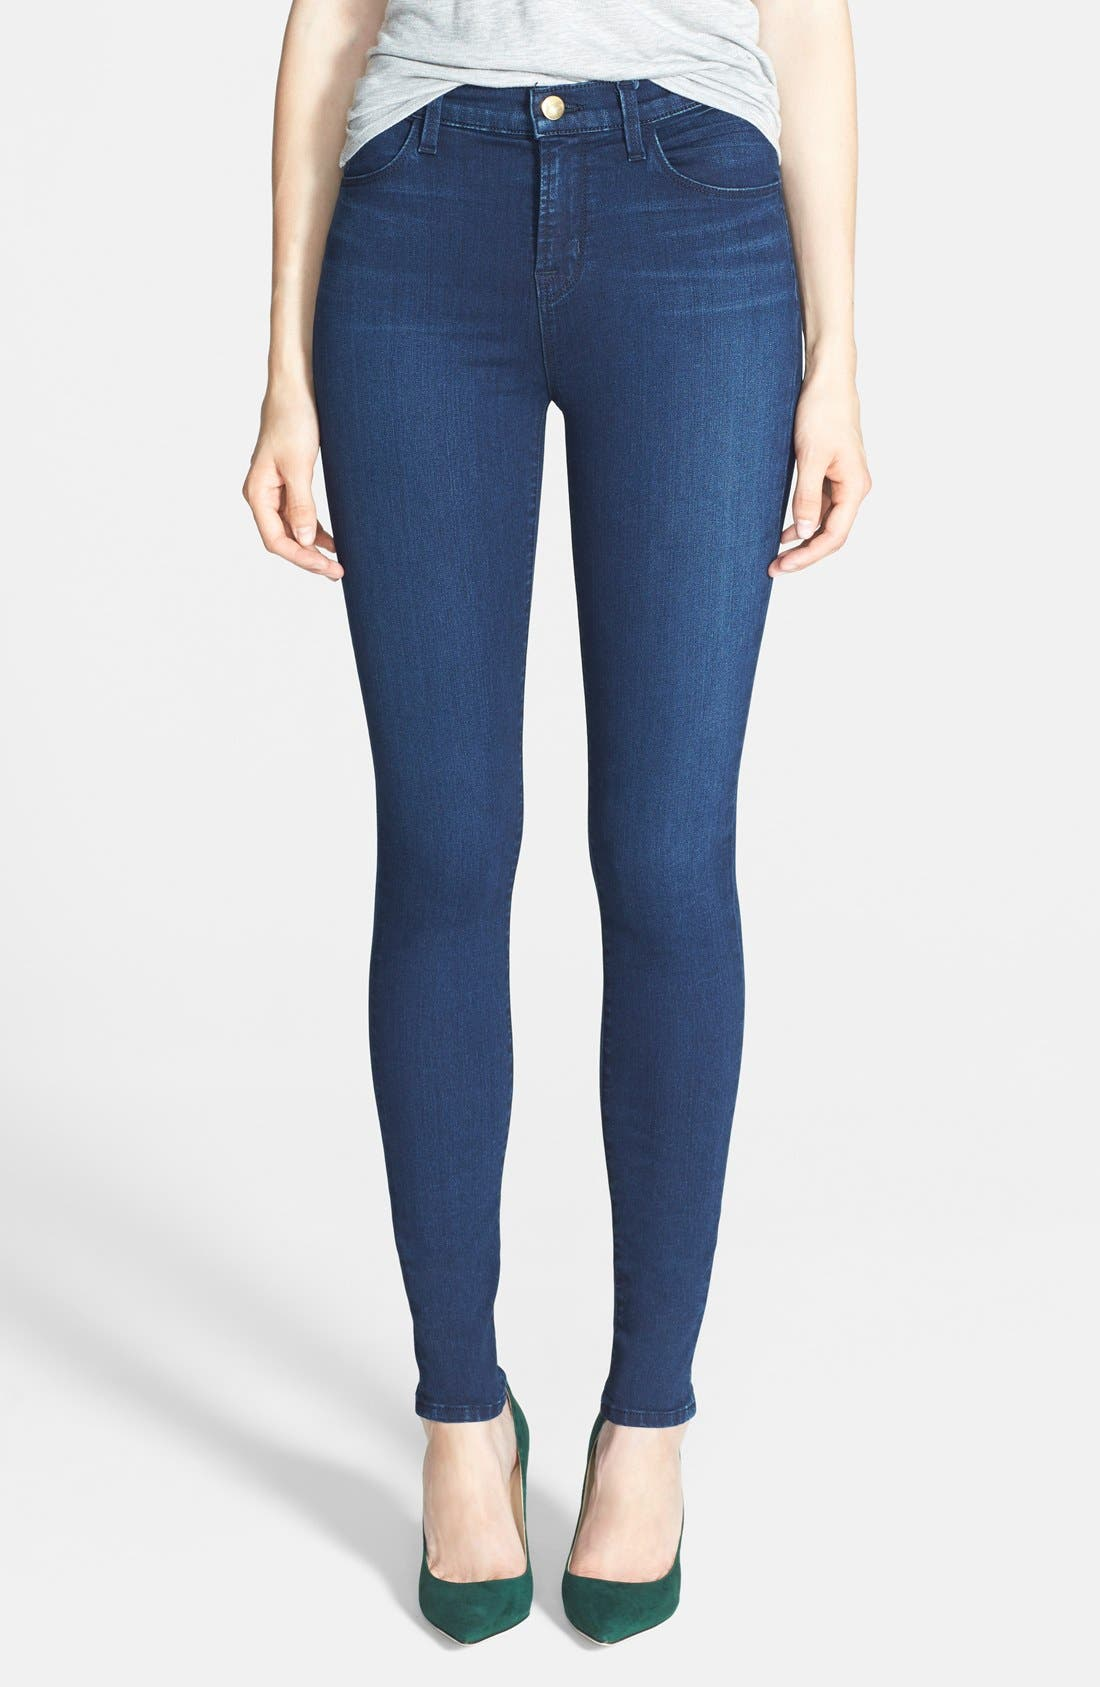 J BRAND,                             'Maria' High Rise Skinny Jeans,                             Main thumbnail 1, color,                             400